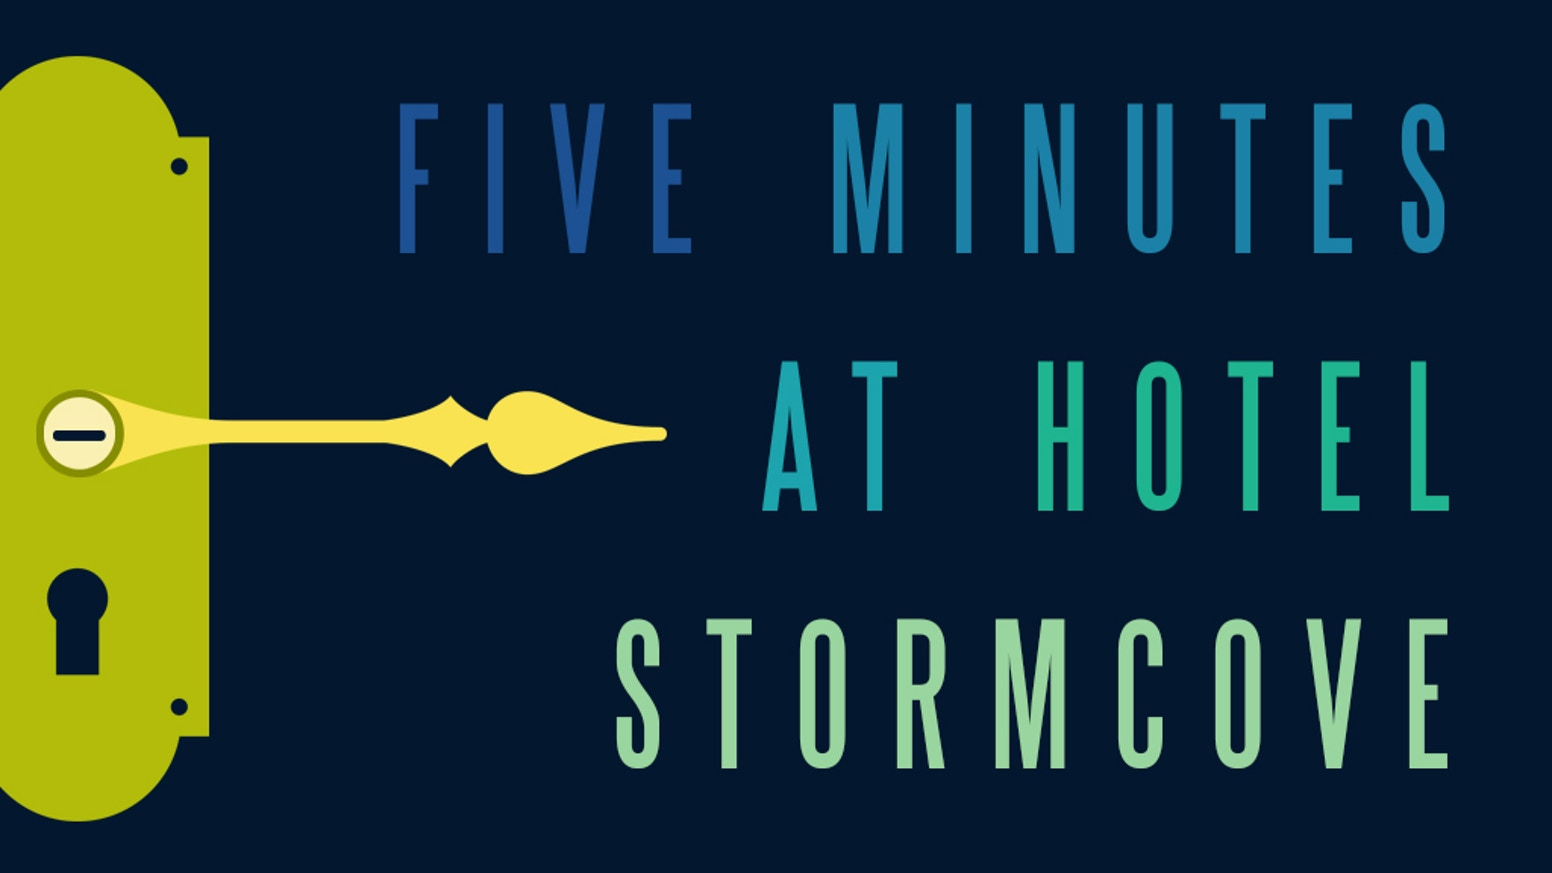 Five Minutes at Hotel Stormcove by Atthis Arts, LLC